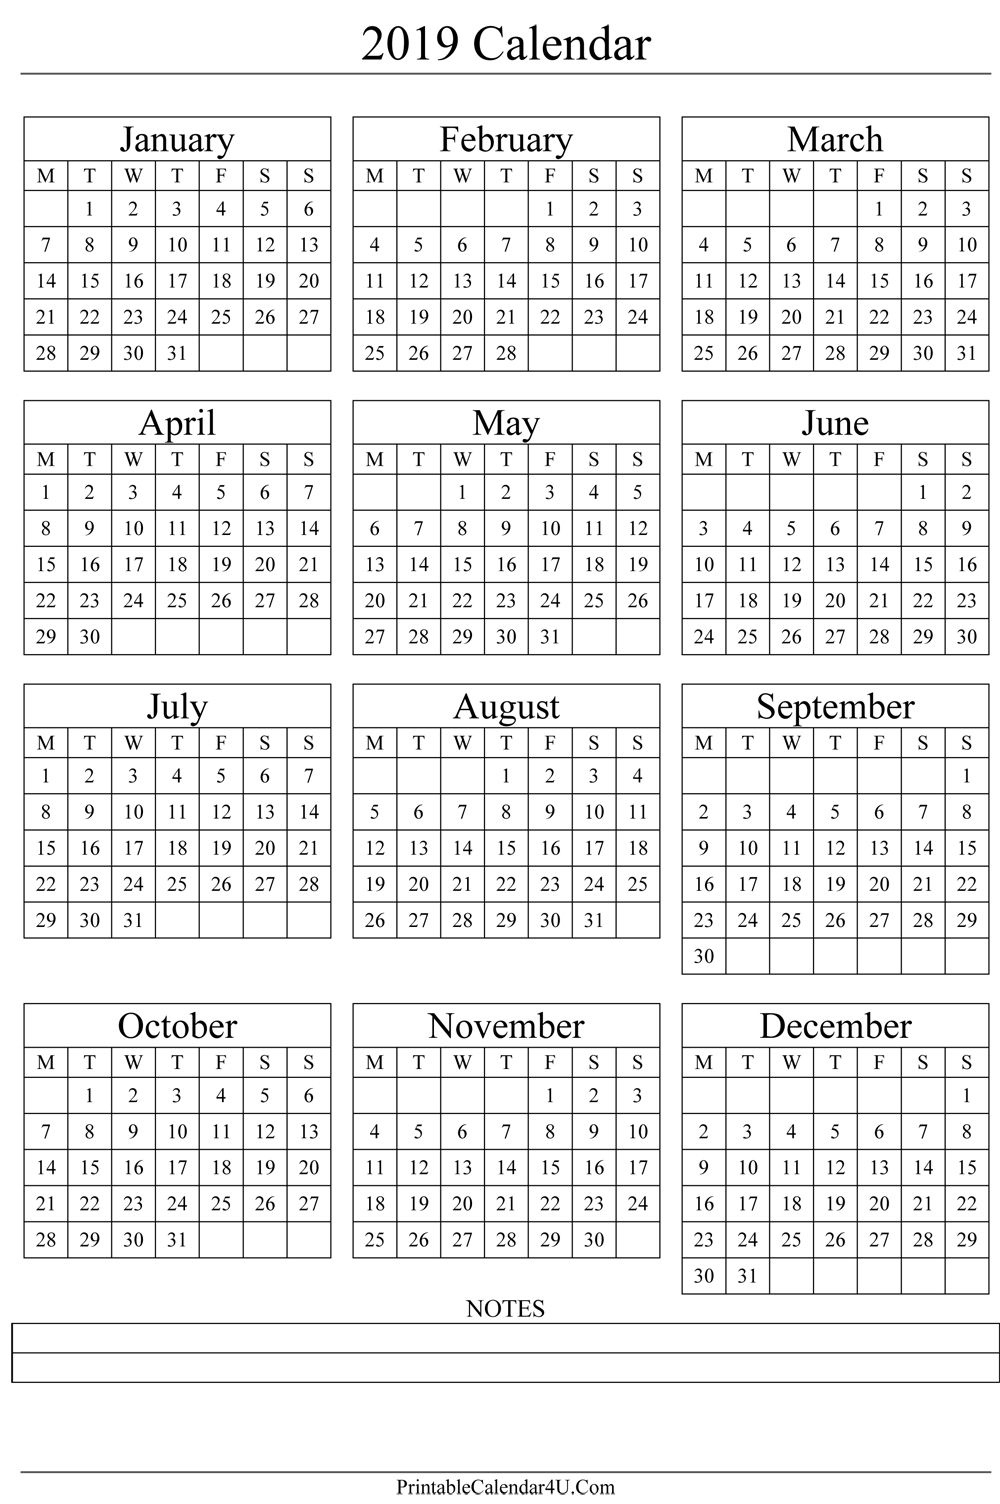 Annual Calendar 2019 Portrait Printable Calendar 2017 | Free Impressive Calendar Template That Can Be Wrote On